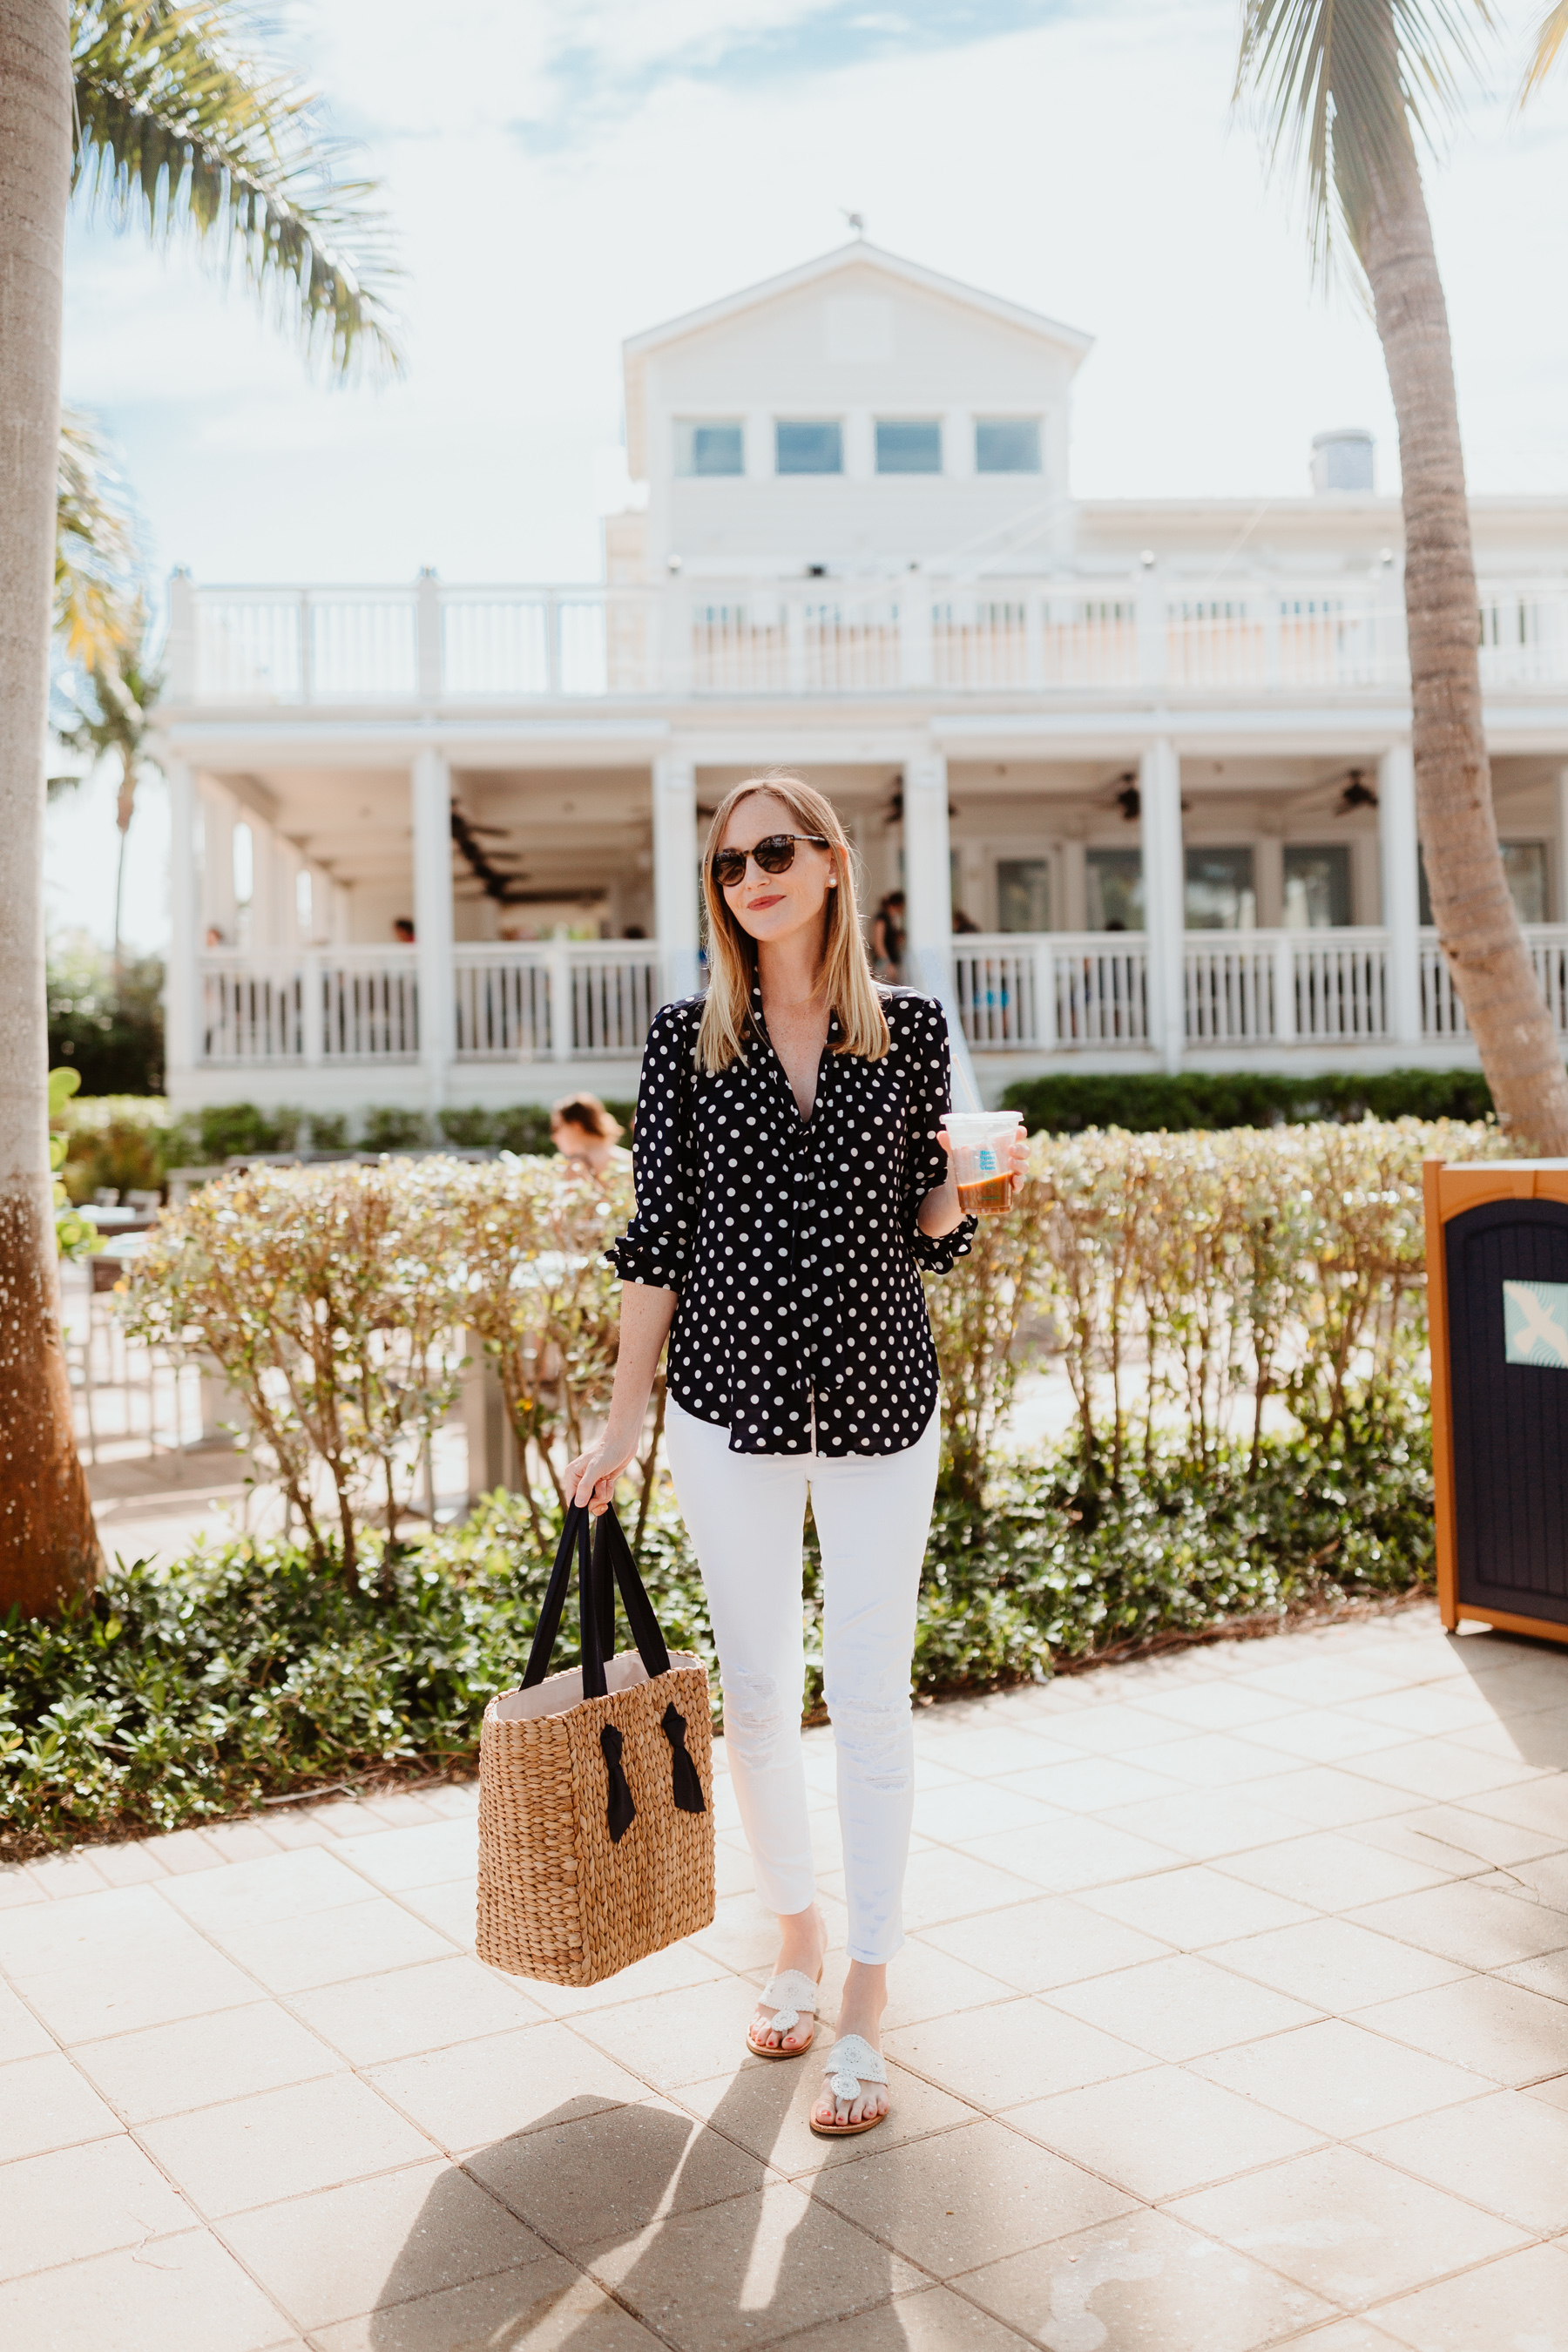 Kelly's Outfit: J.Crew Navy Polka Dot Top / Pamela Munson Woven Tote / Jack Rogers / J Brand Maternity Ankle Jeans